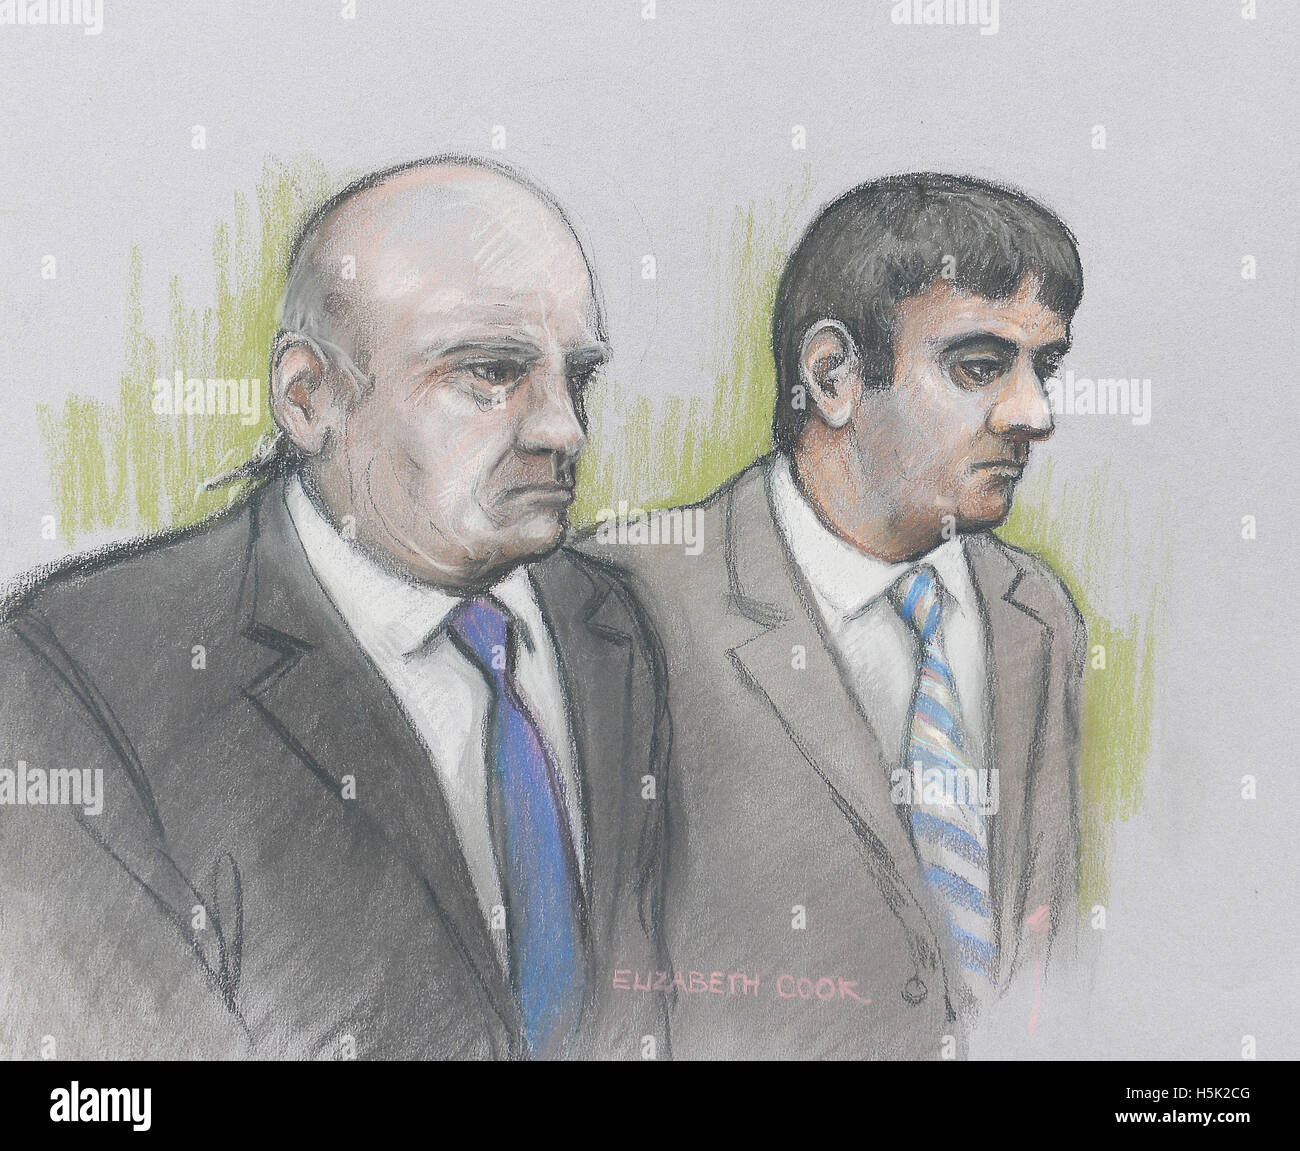 File court artist sketch dated 21/09/16 by Elizabeth Cook of Alan Smith (left) and Fake Sheikh Mazher Mahmood who - Stock Image